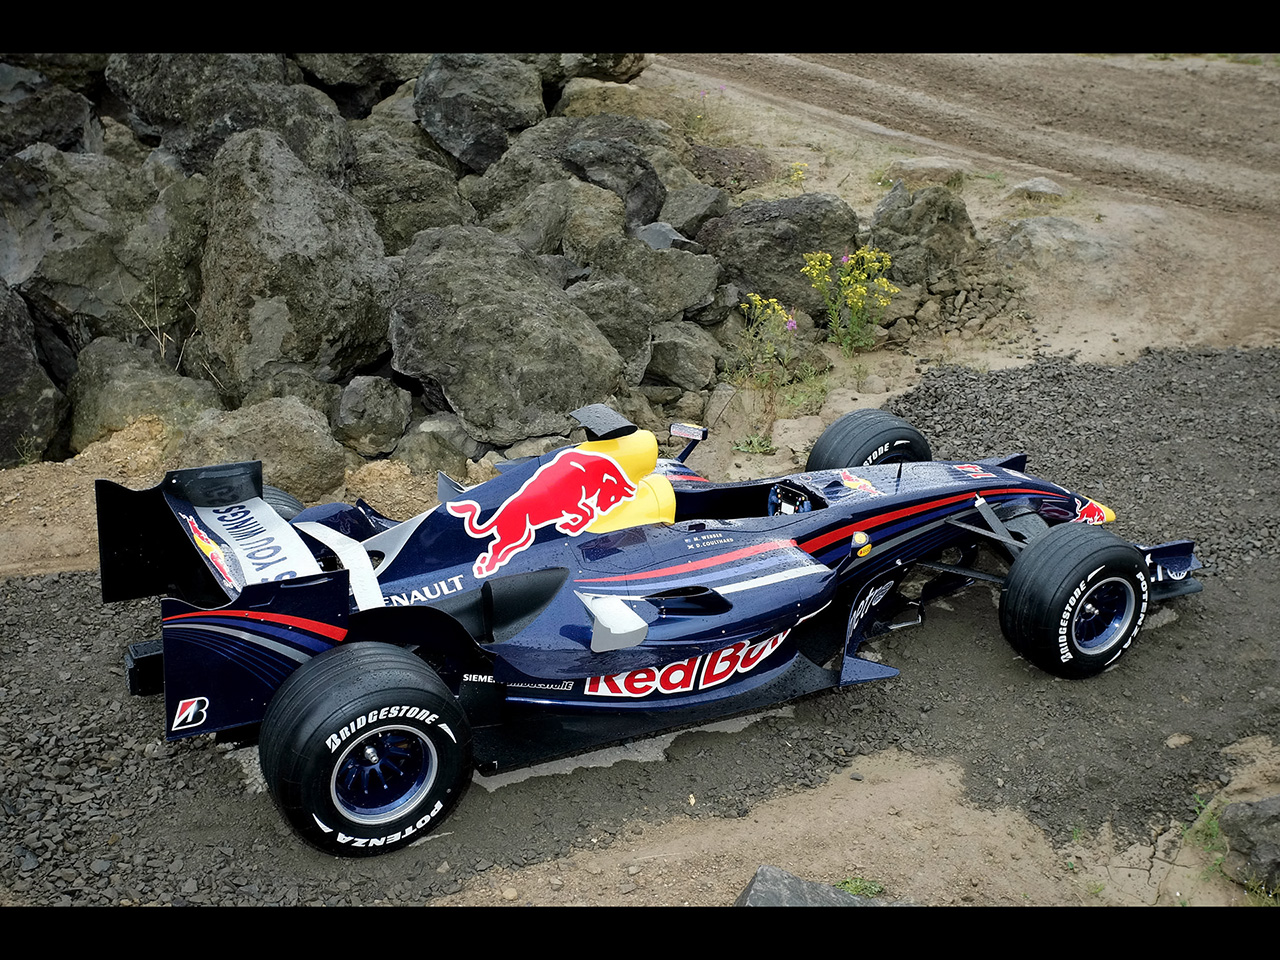 Red bull rb3 photo - 8